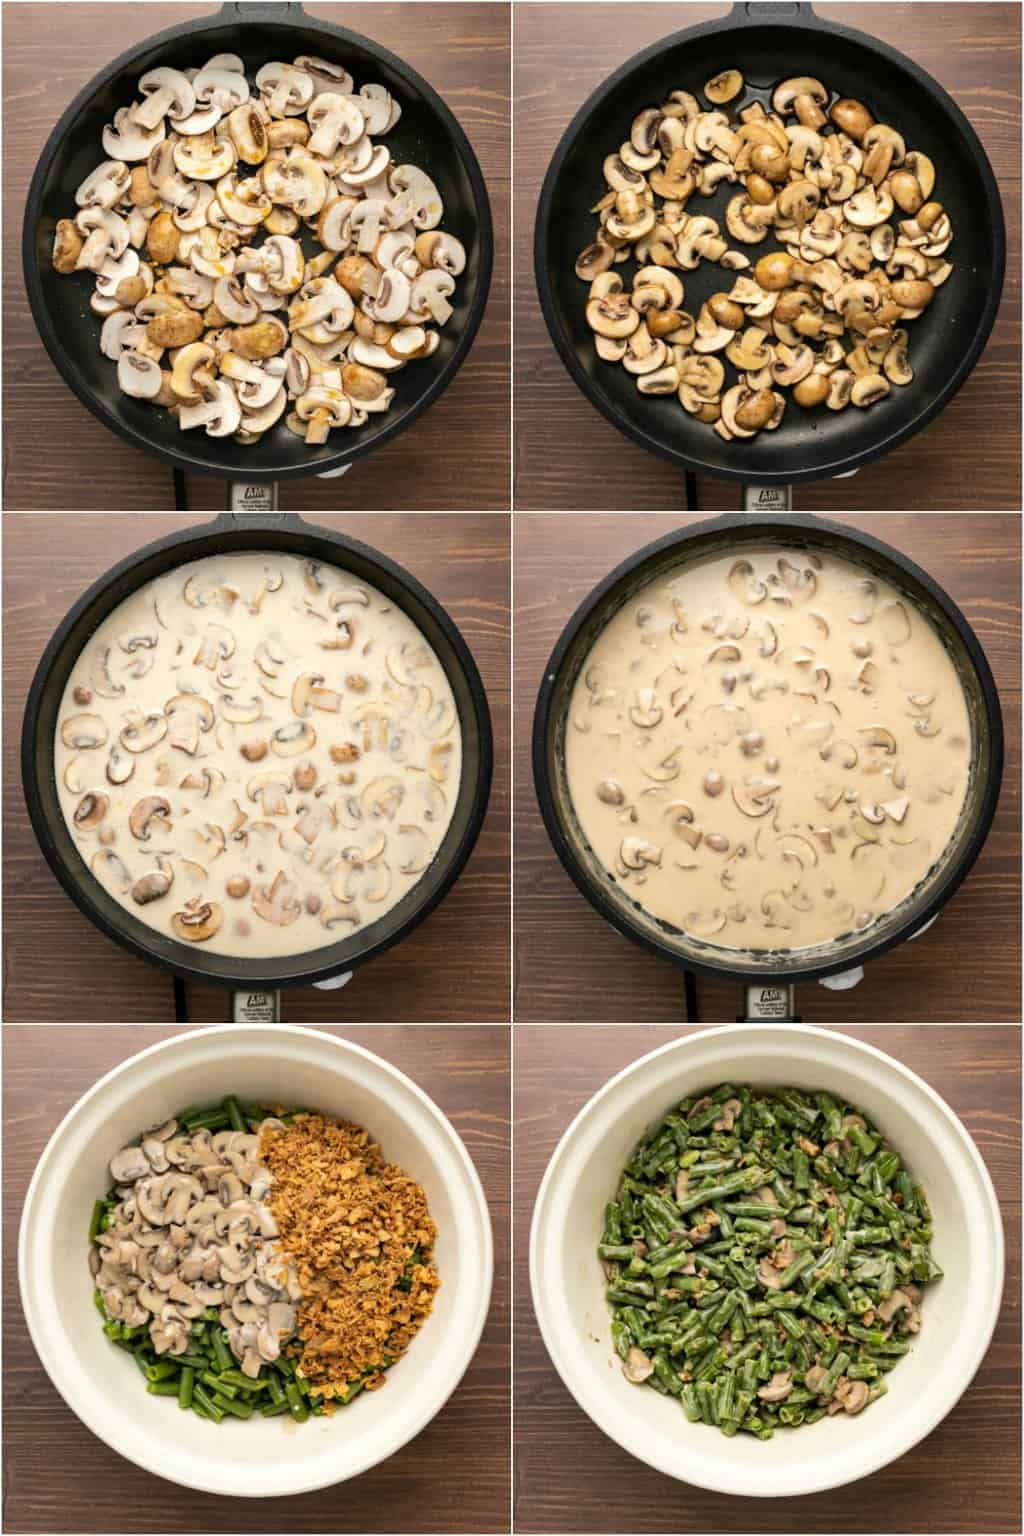 Step by step process photo collage of making a vegan green bean casserole.